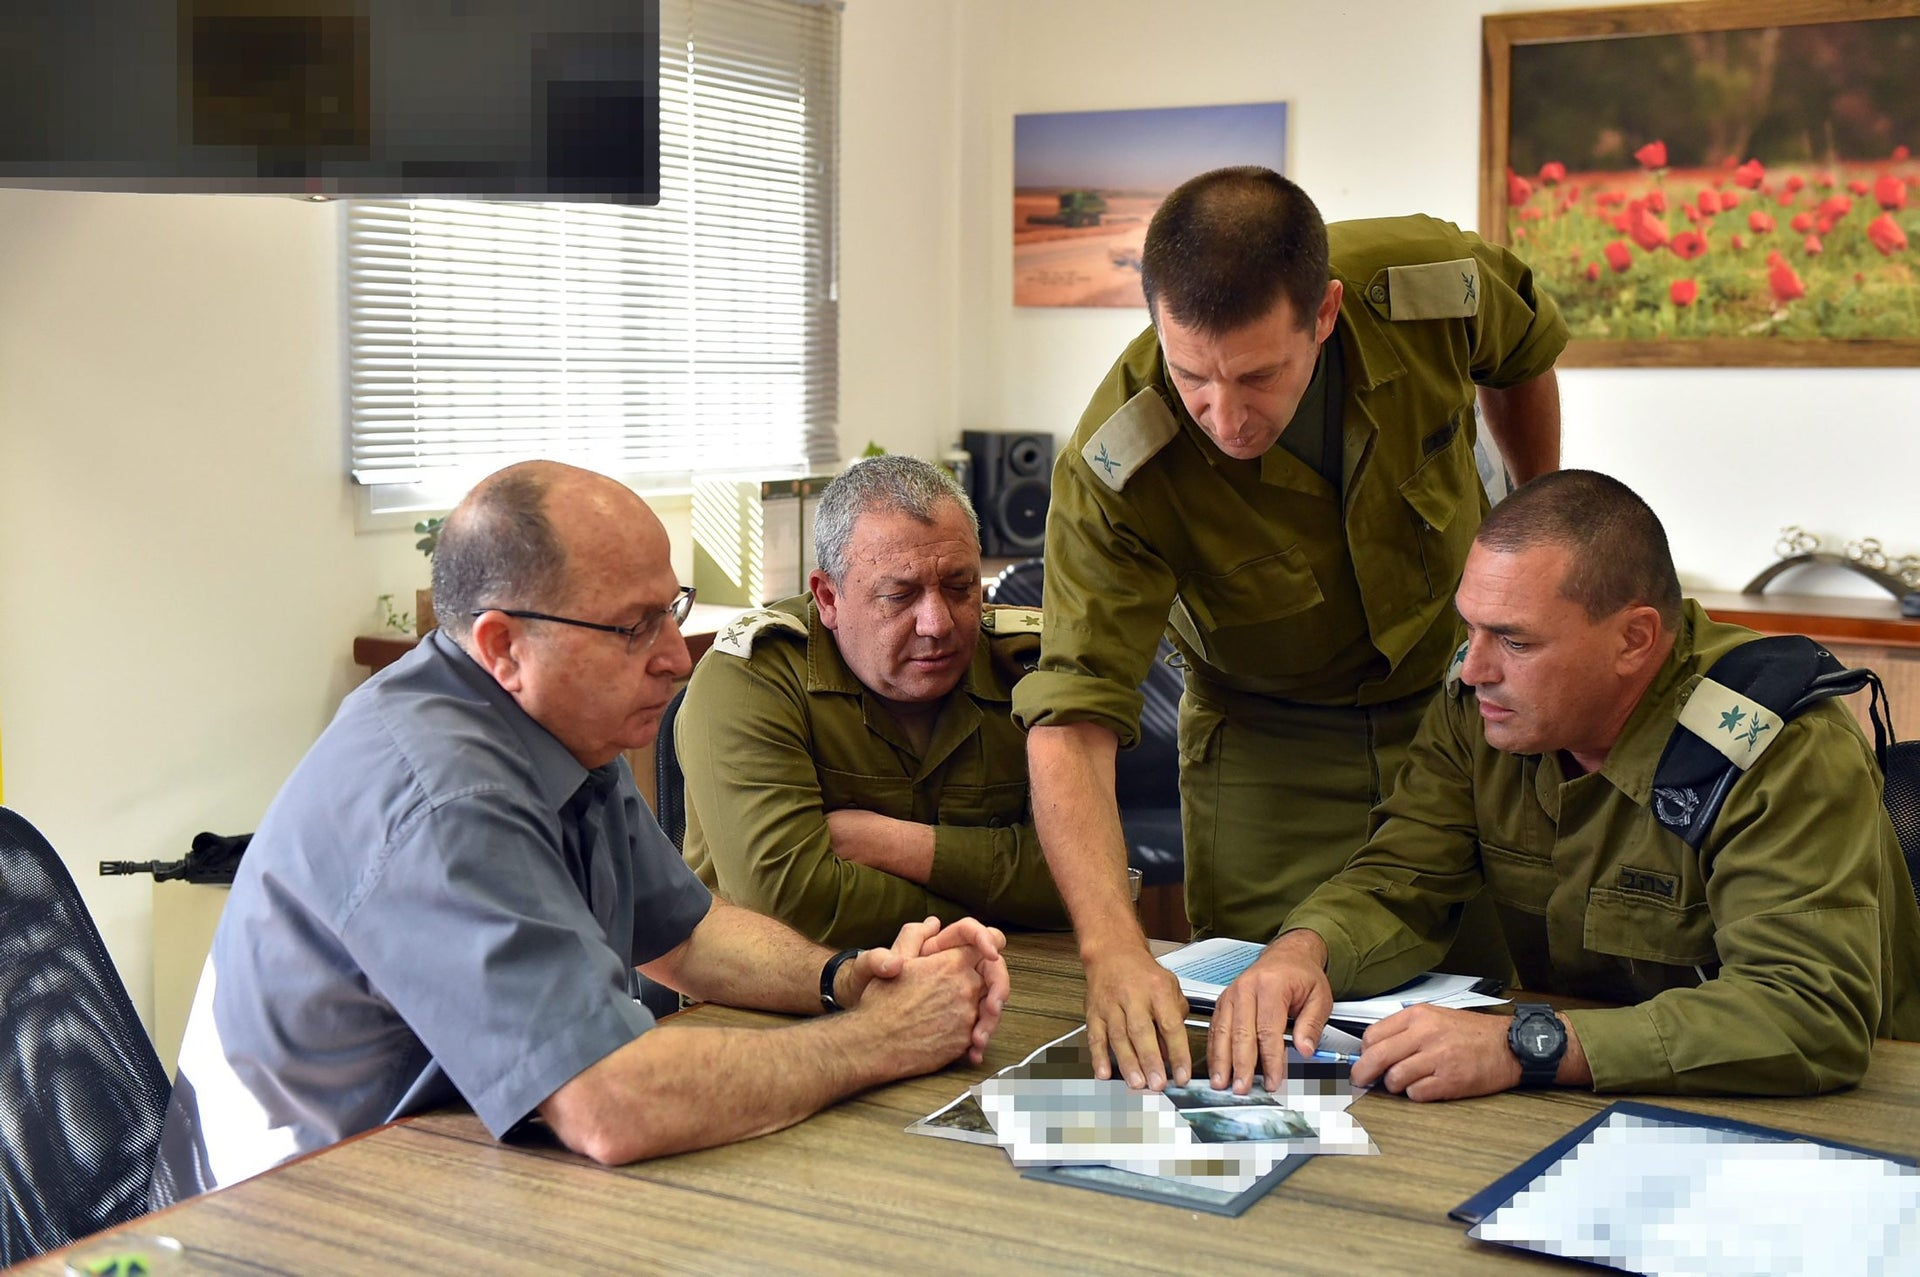 Then-Defense Minister Moshe Ya'alon visits the the IDF's Gaza Division along with IDF Chief of Staff Gadi Eisenkot, March, 2017.